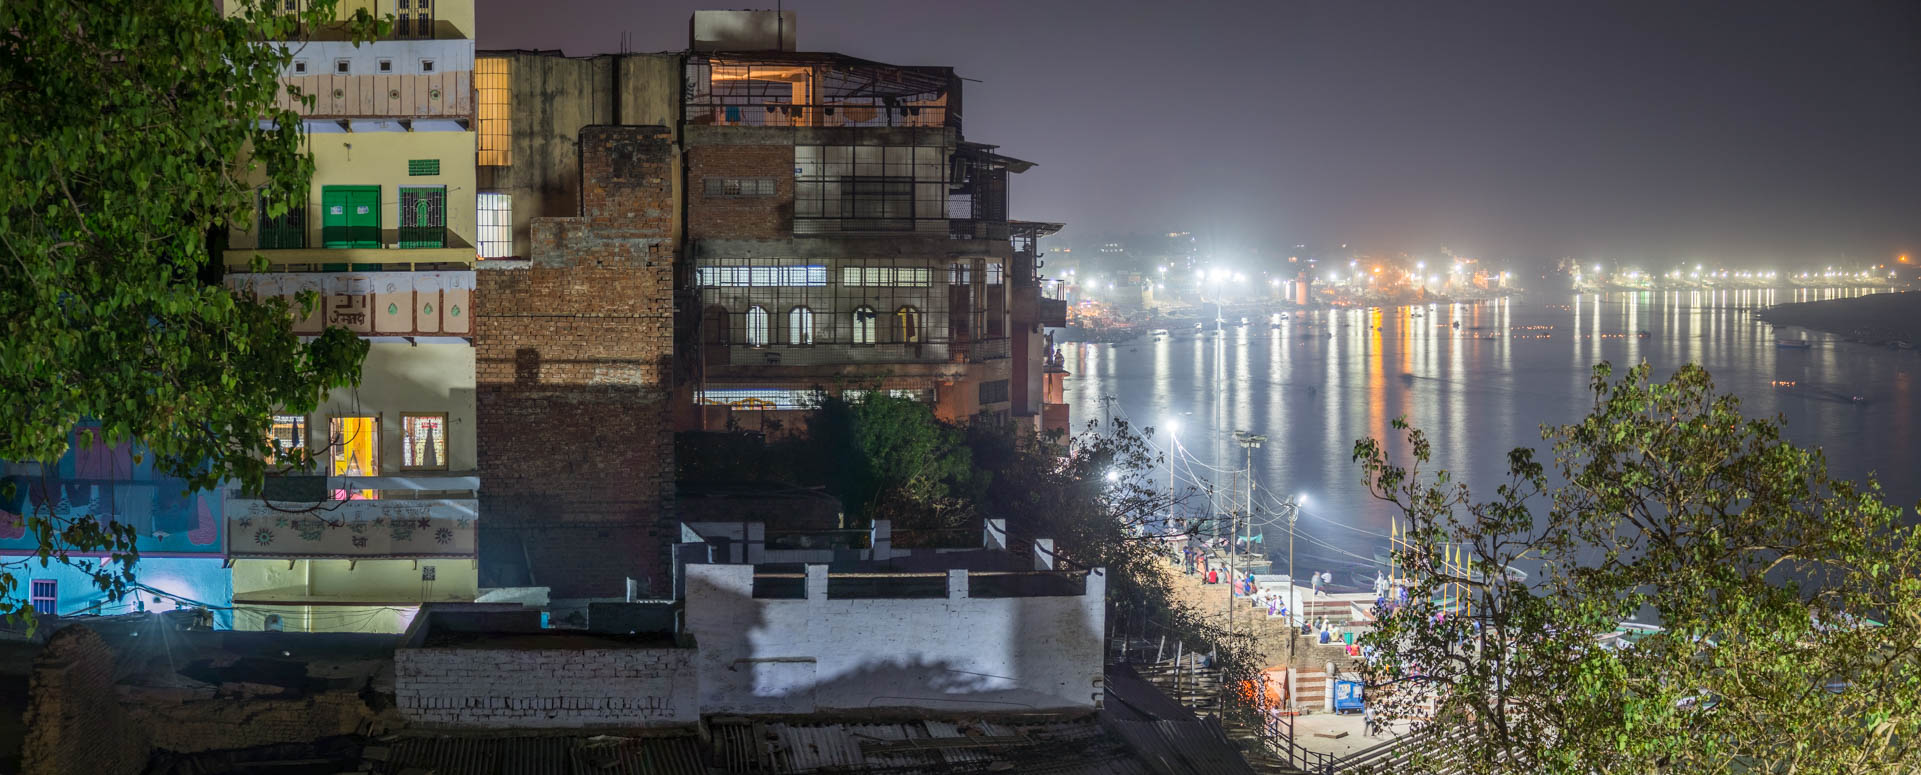 Night atmopshere in Varanasi